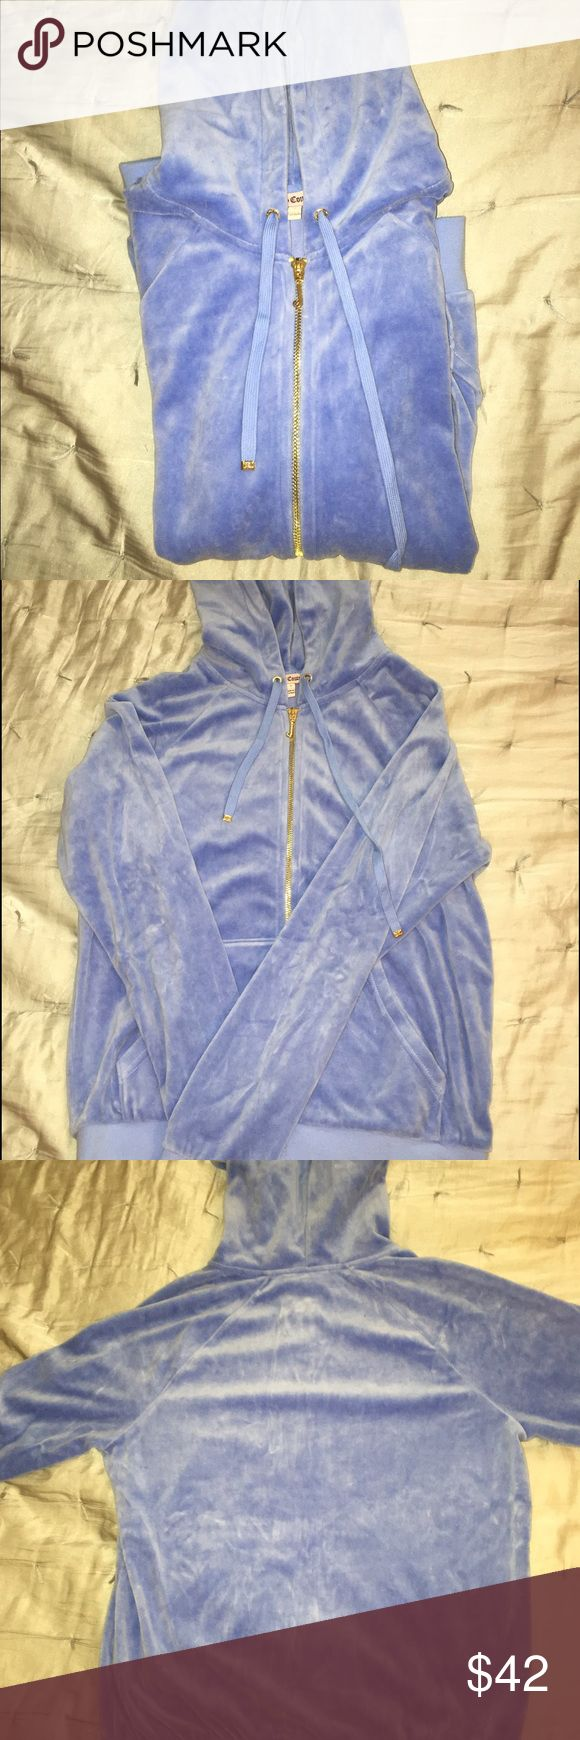 Light Blue Velour Juicy Couture Zip-Up This light blue zip up from Juicy is unbelievably soft and comfortable. Fits true to size, has been worn no more than twice. It is in pristine condition with no snags or stains. Plain back. Juicy Couture Tops